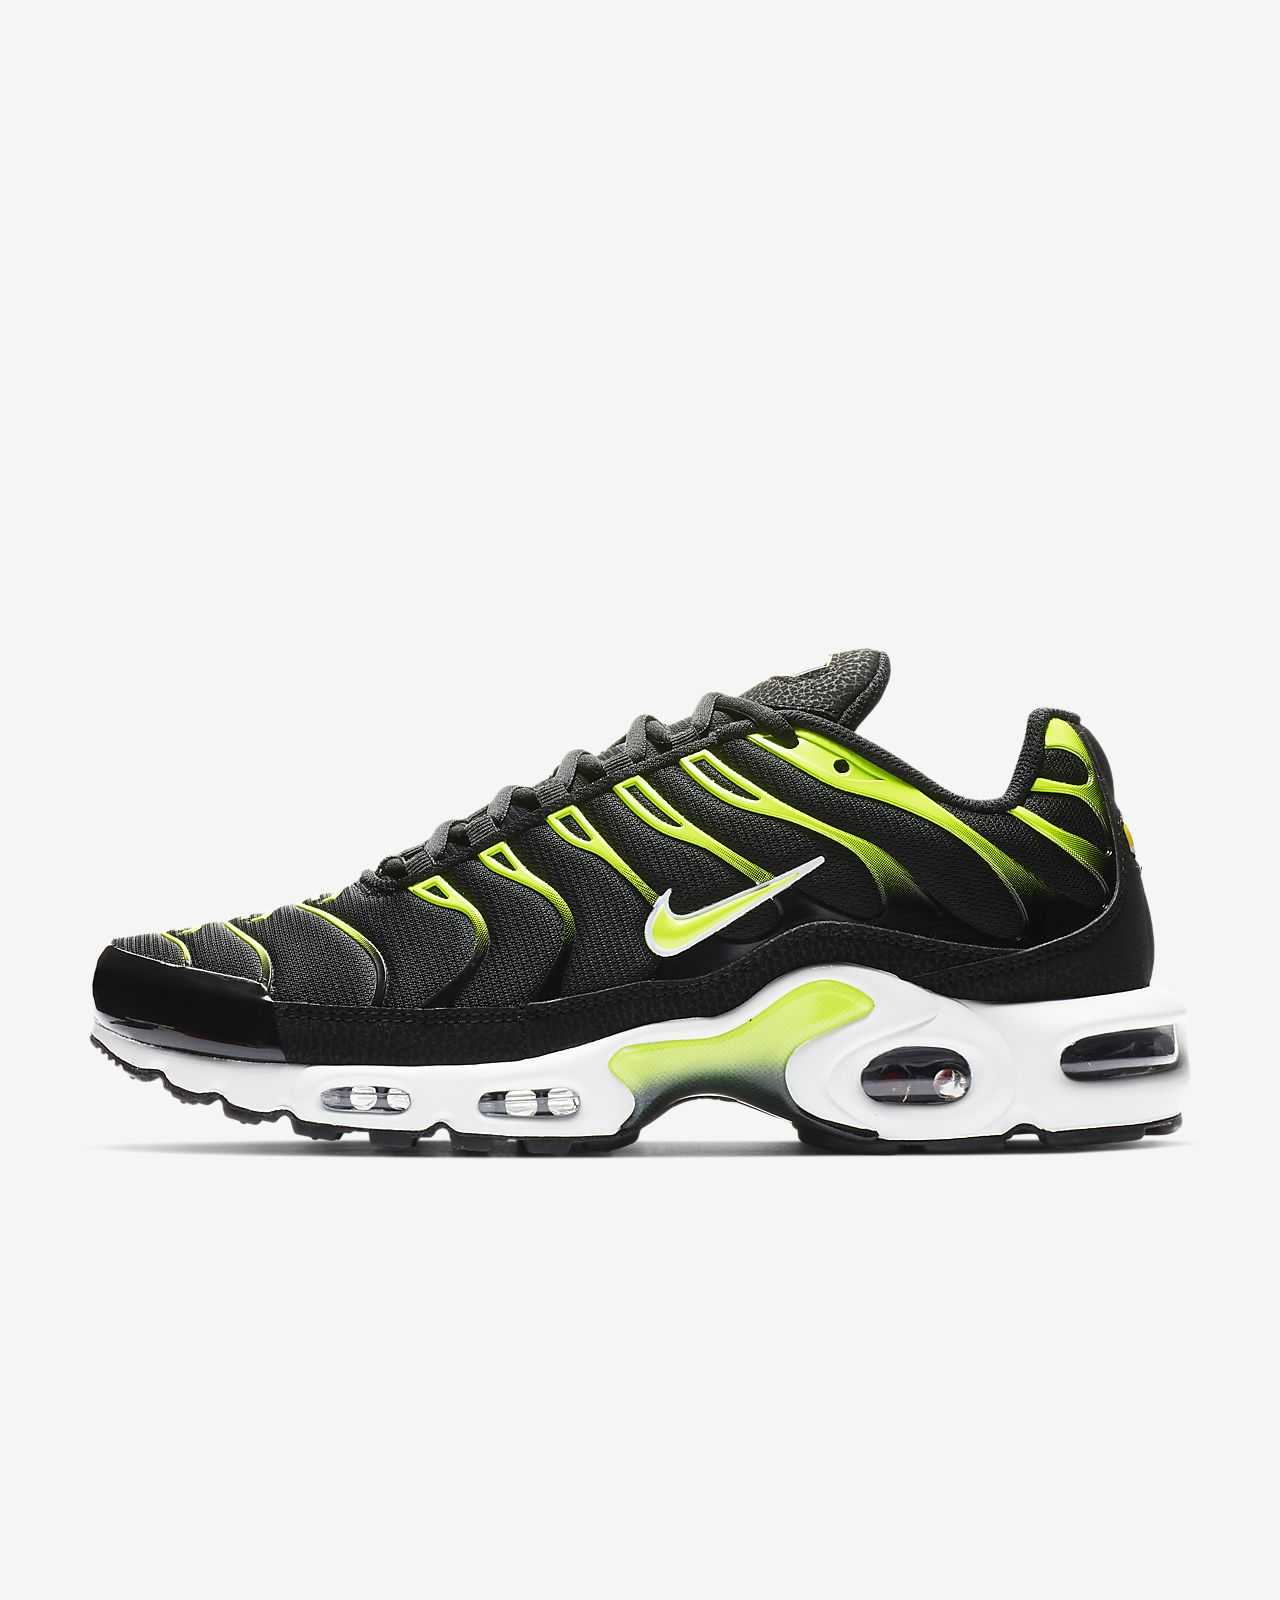 17bec6cf70cf Nike Air Max Plus Men s Shoe. Nike.com CA